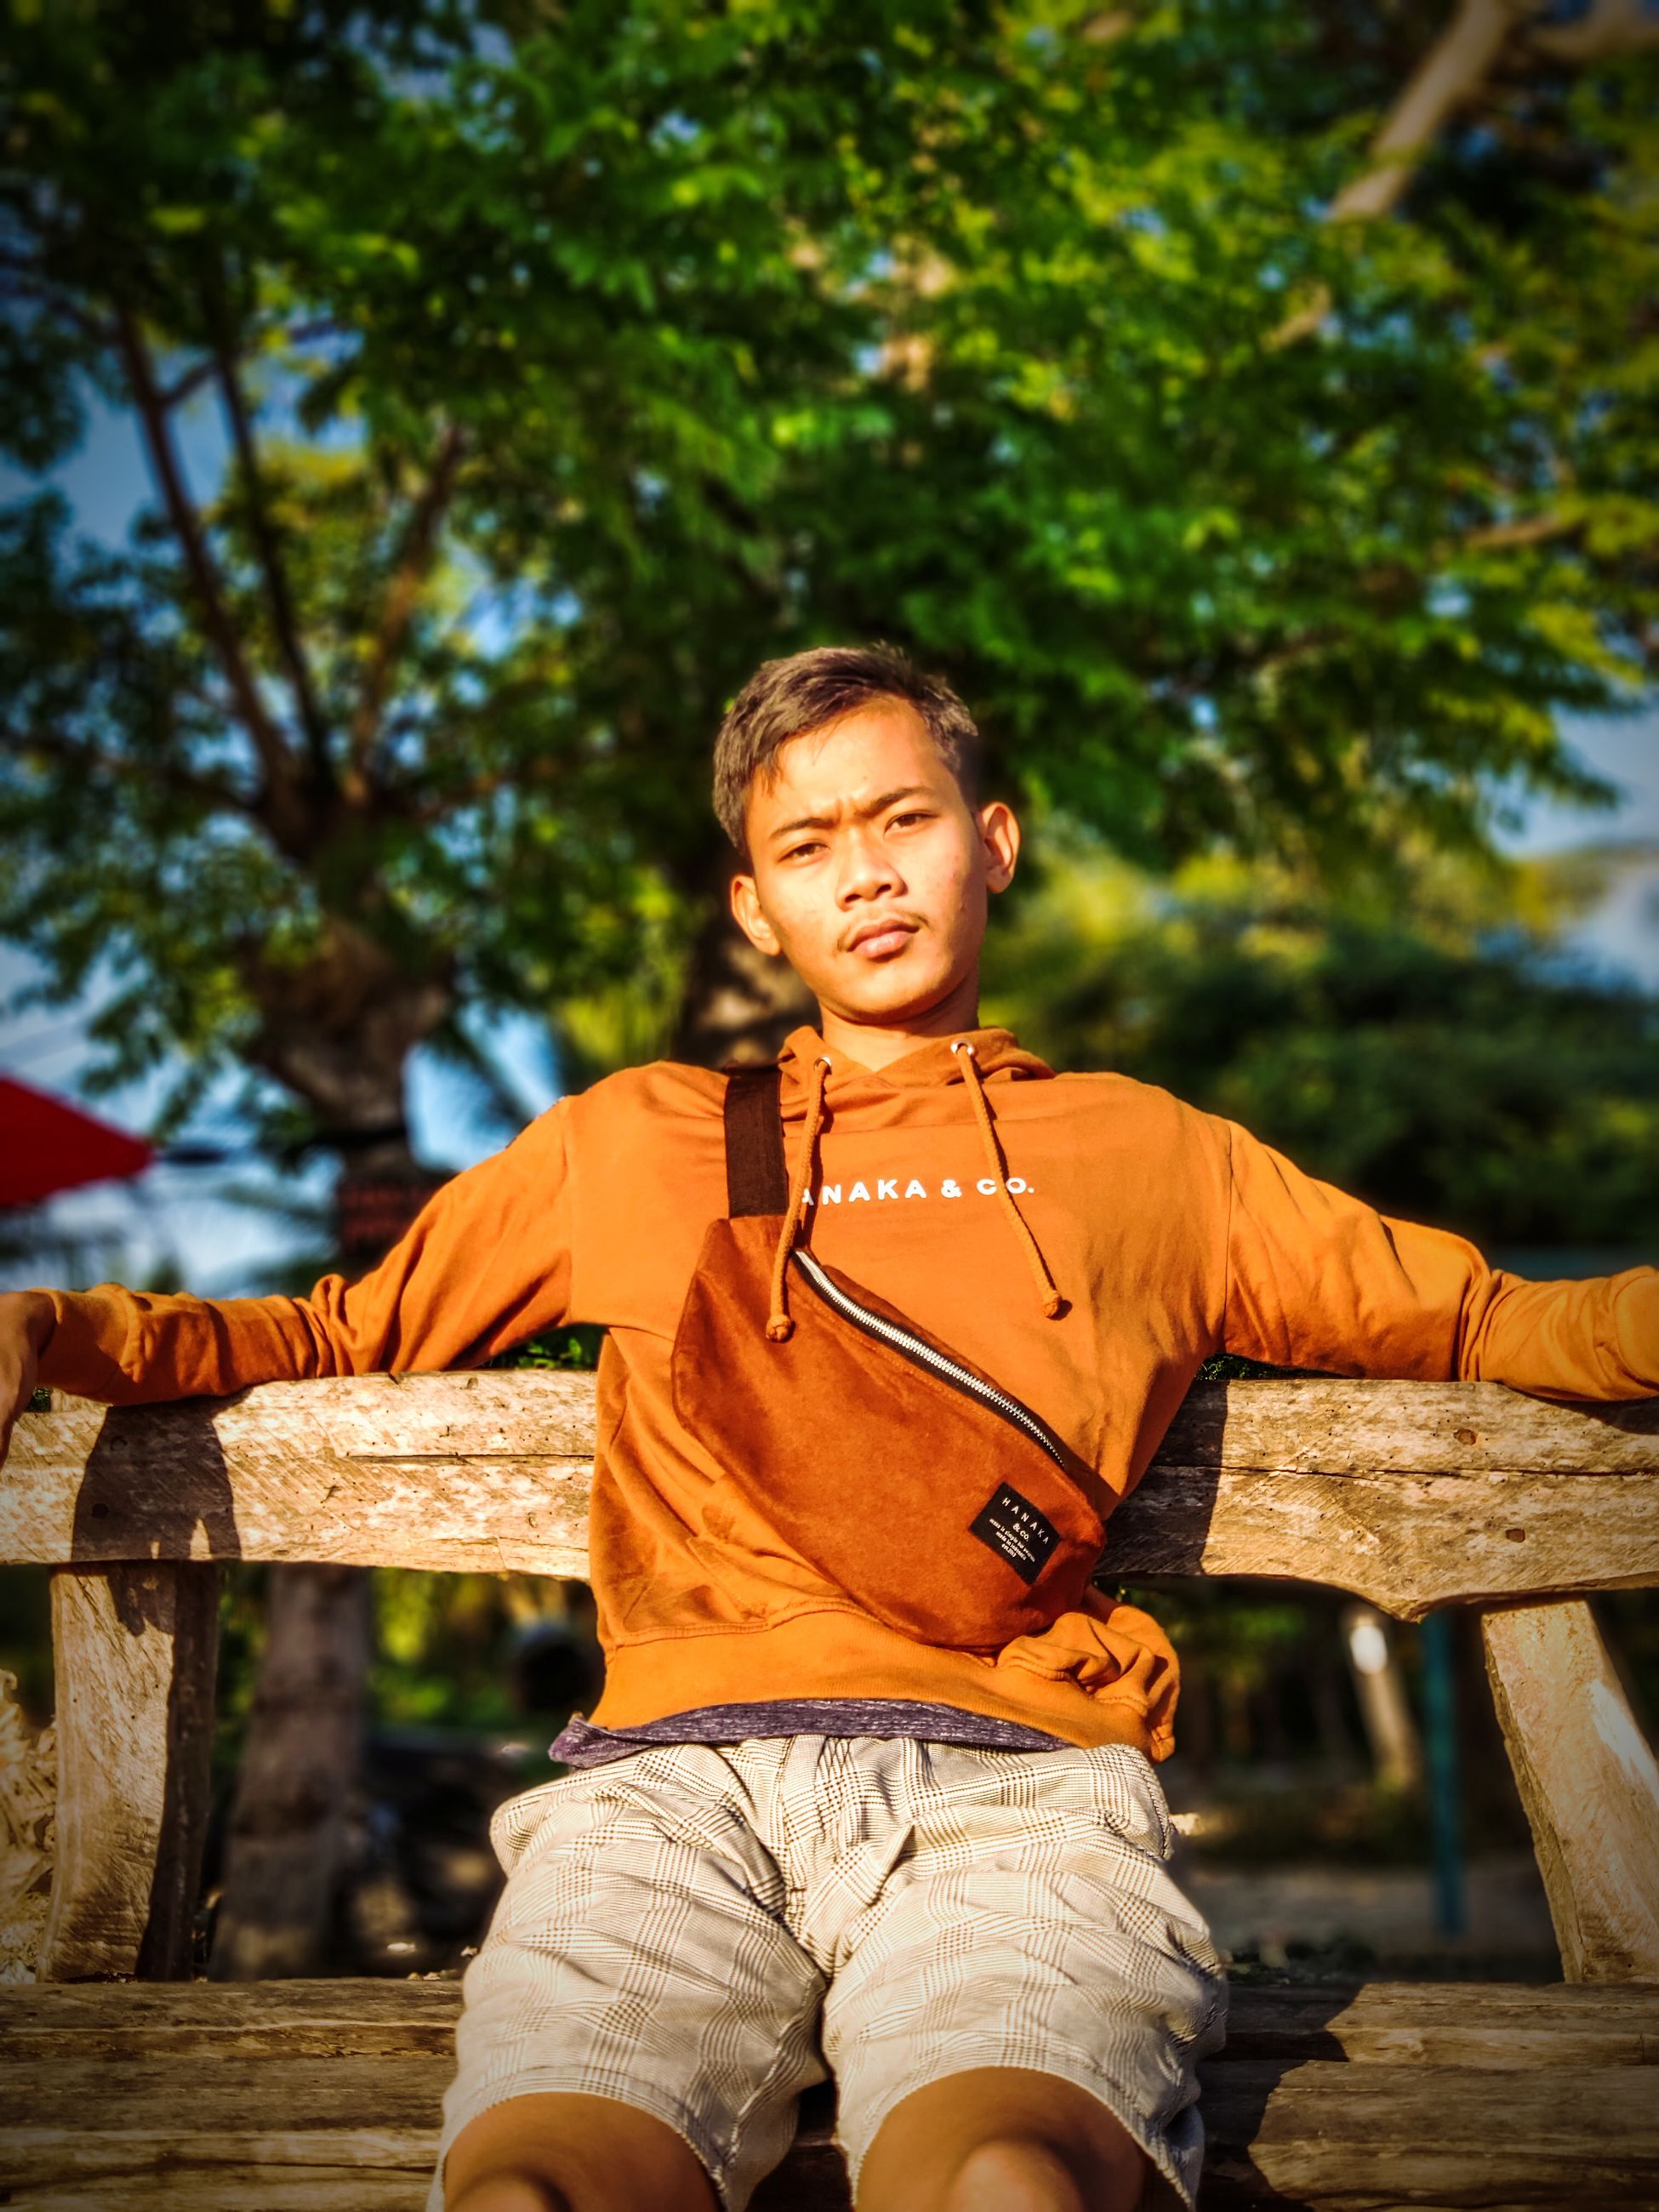 one person, casual clothing, tree, three quarter length, real people, wood - material, day, leisure activity, men, lifestyles, sunlight, males, orange color, front view, boys, childhood, standing, focus on foreground, nature, outdoors, human arm, innocence